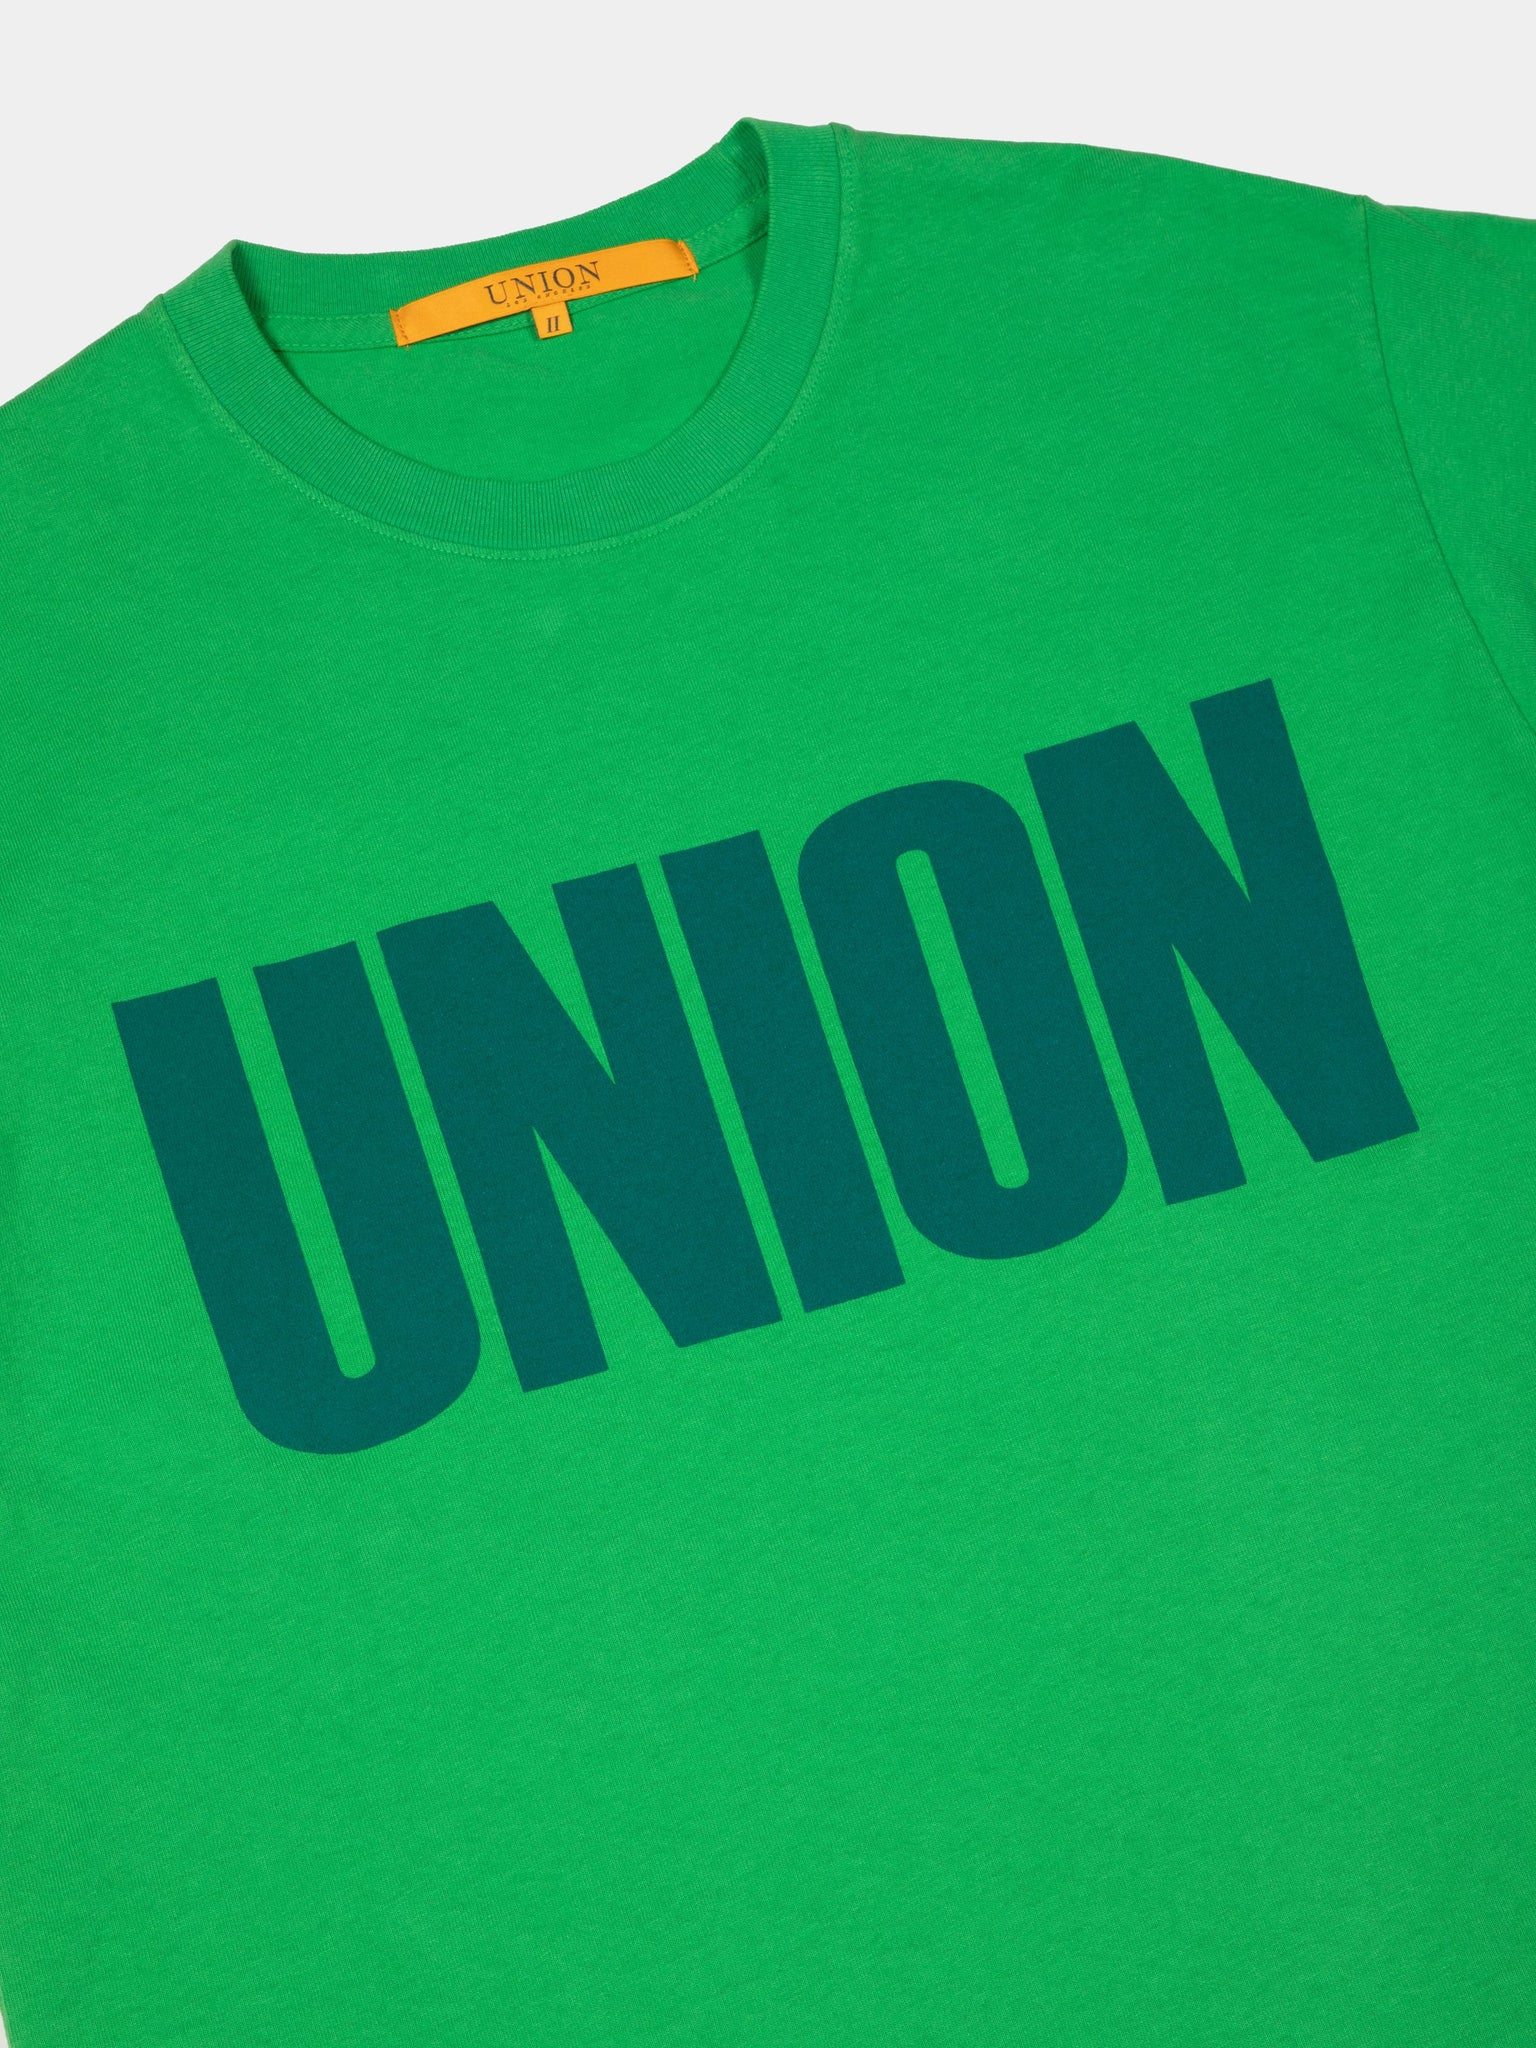 union-logo-t-shirt-3